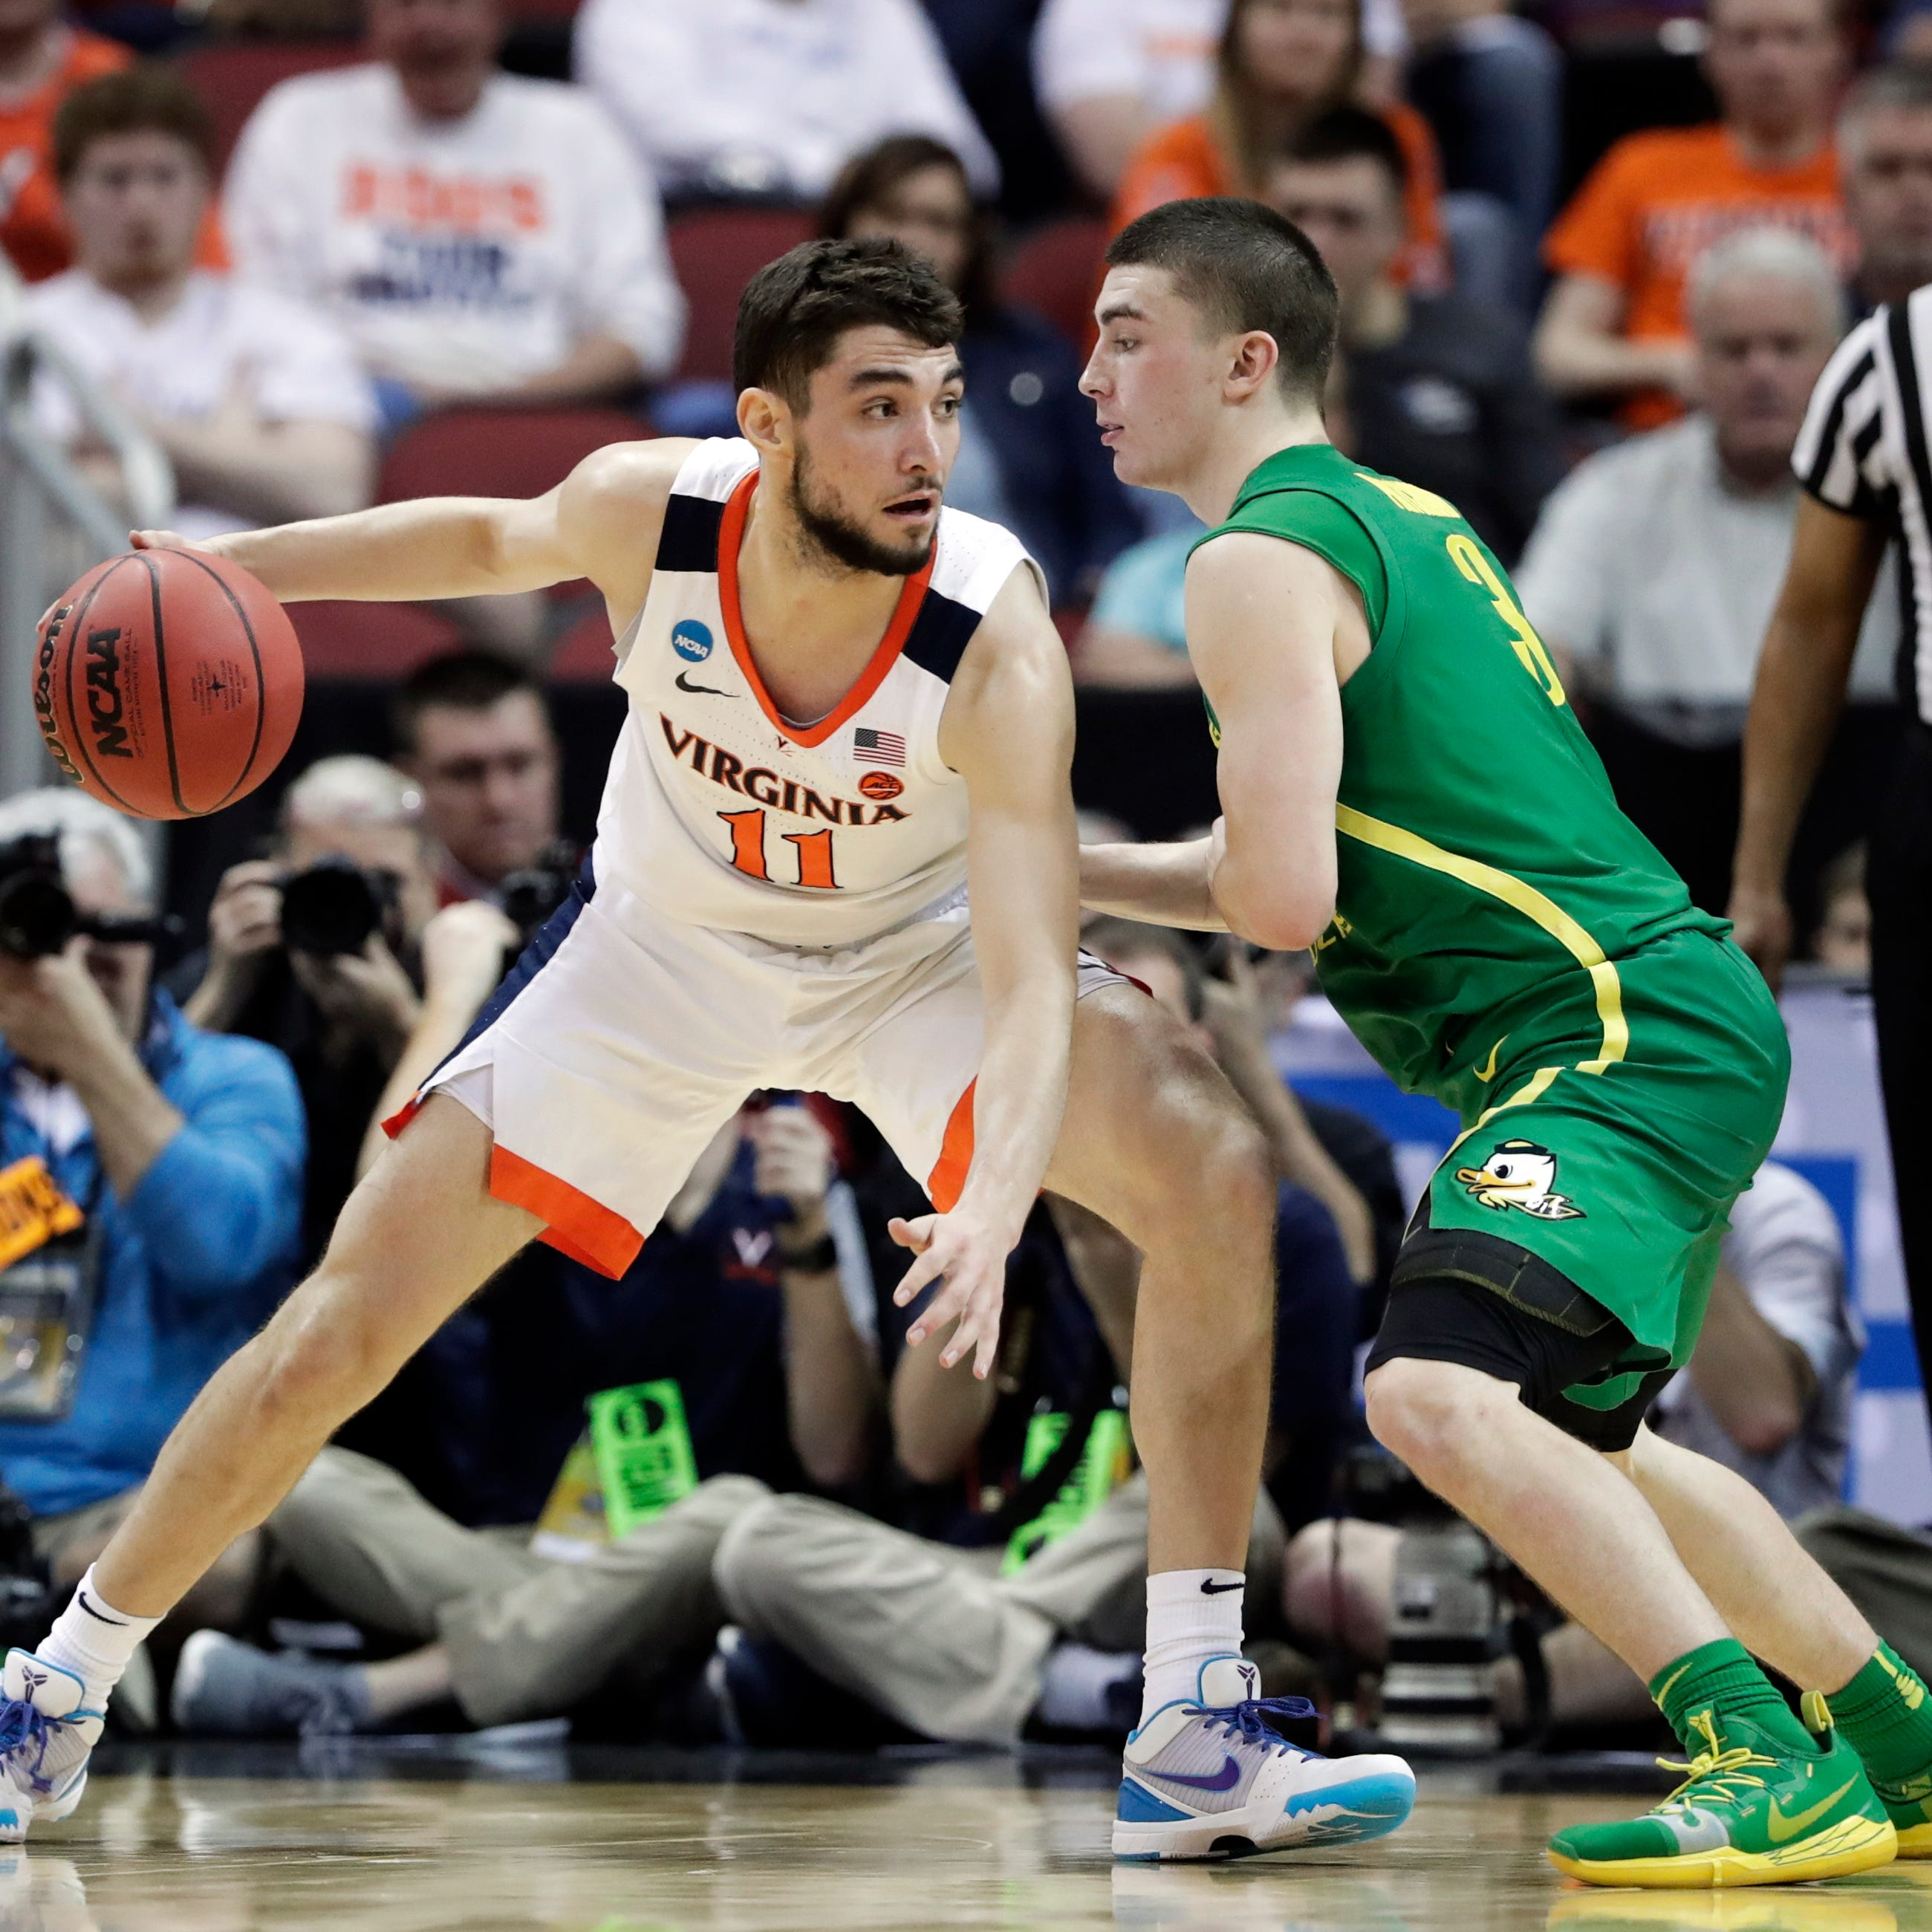 Virginia's Ty Jerome, an Iona Prep graduate, is living out his dream in the Final Four